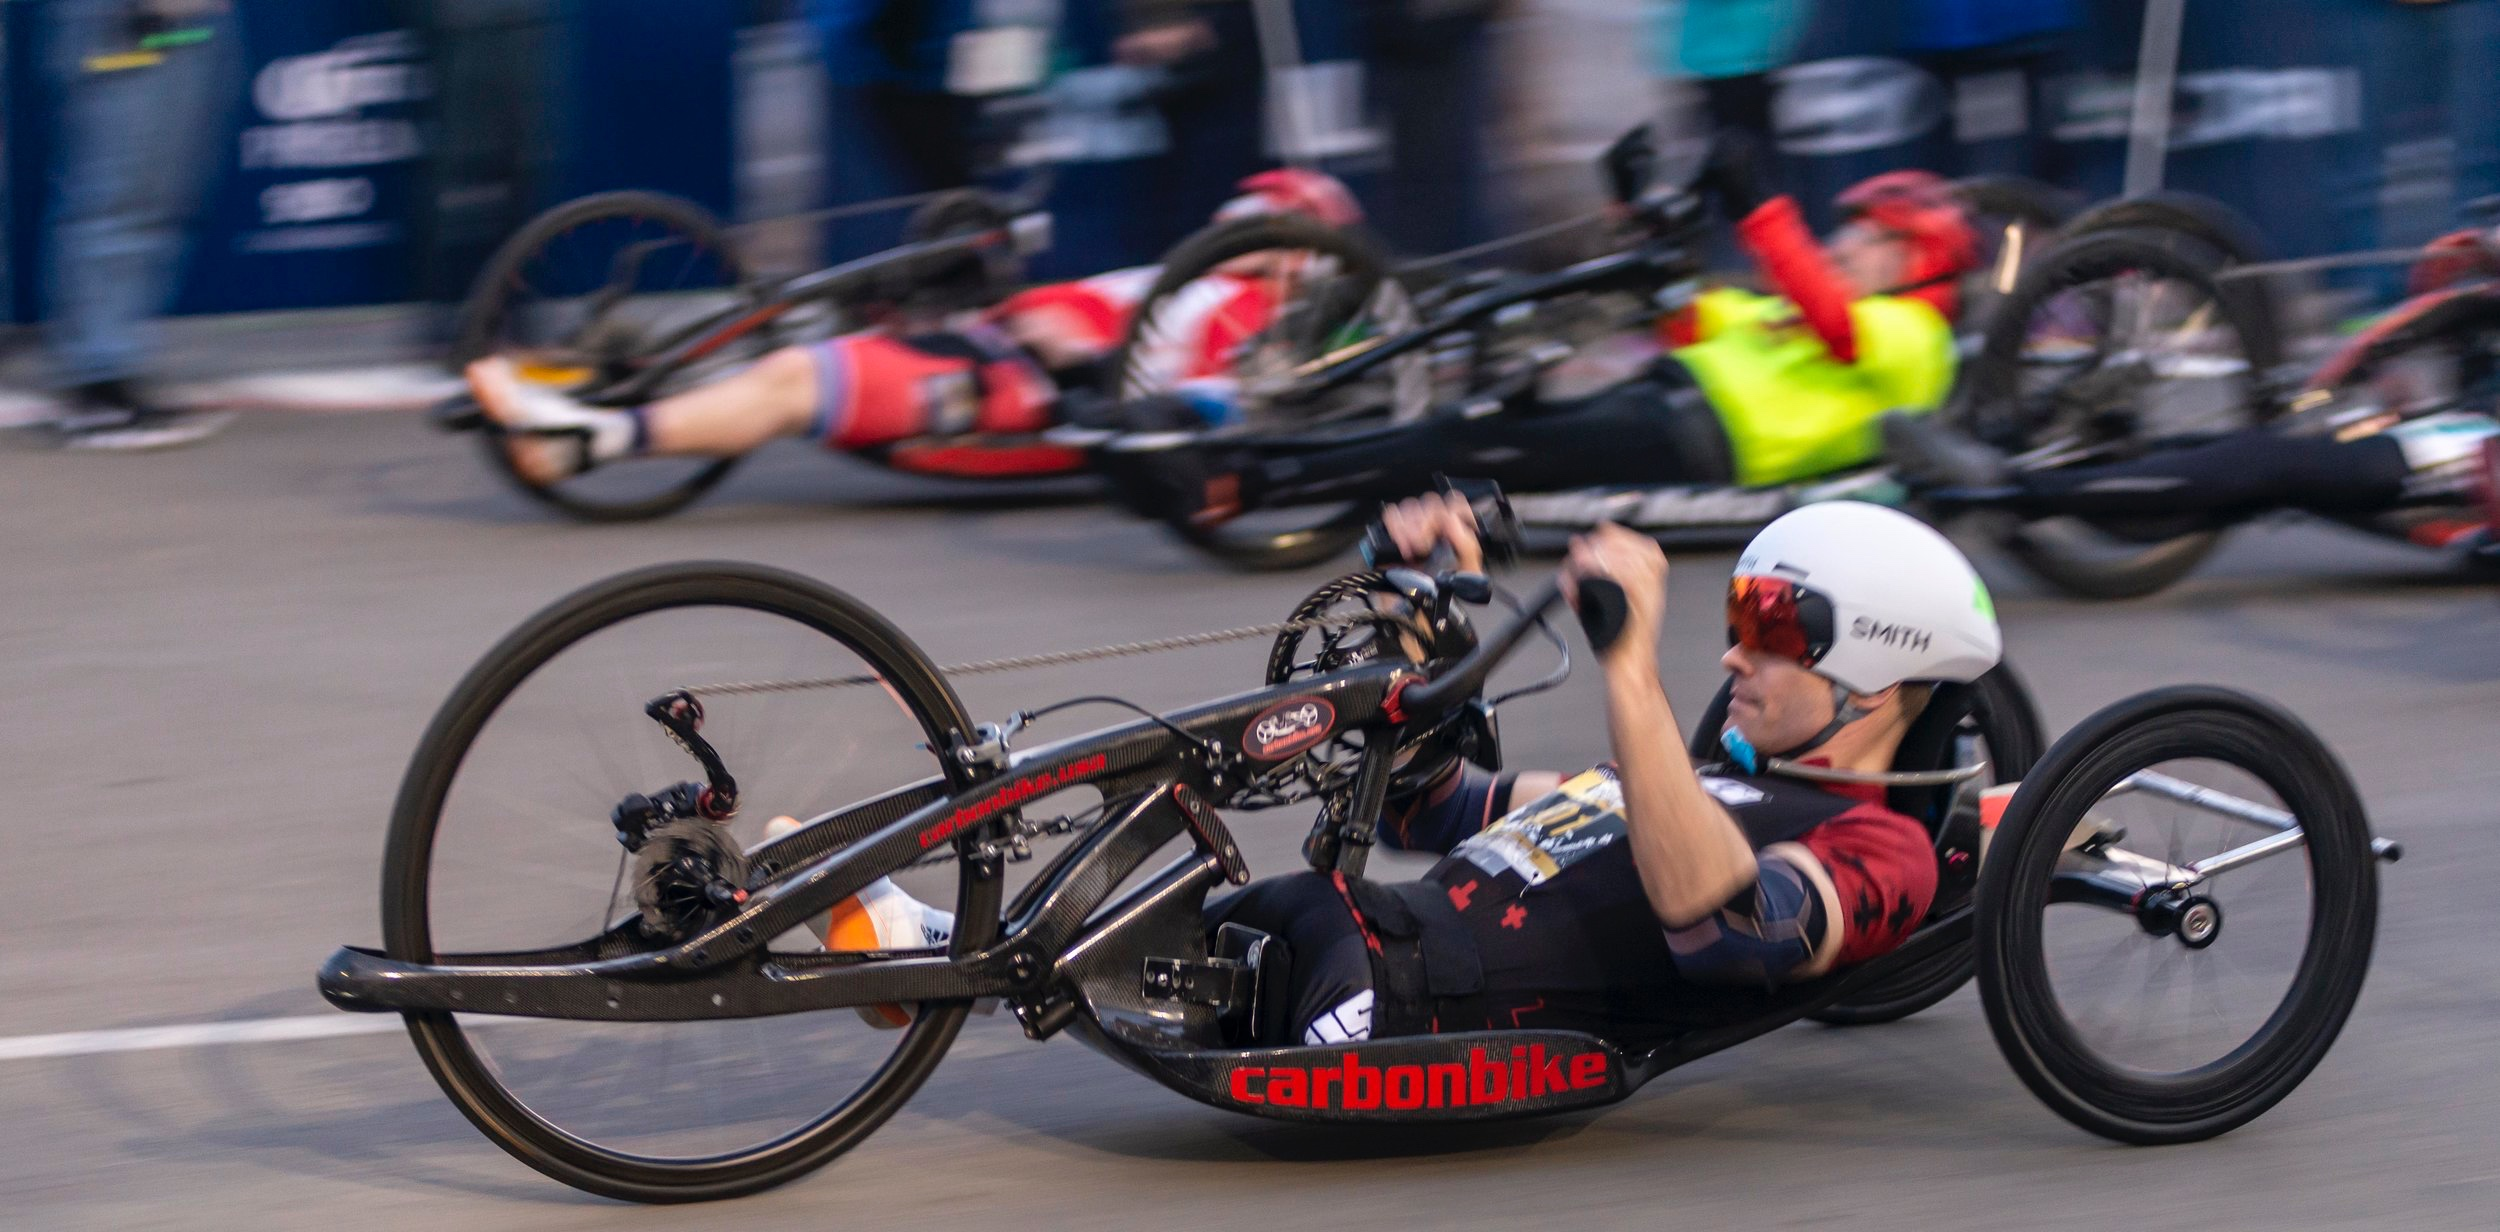 Handcyclist, Travis Gaertner (cq), bursts off the starting line at the 34th Los Angeles Marathon on Sunday, March 24, 2019, at Dodger Stadium in Los Angeles, Calif. Gaertner crosses the finish first with a total handcycle marathon time of 1:06:29. ( Andrew Narvaez/The Corsair)